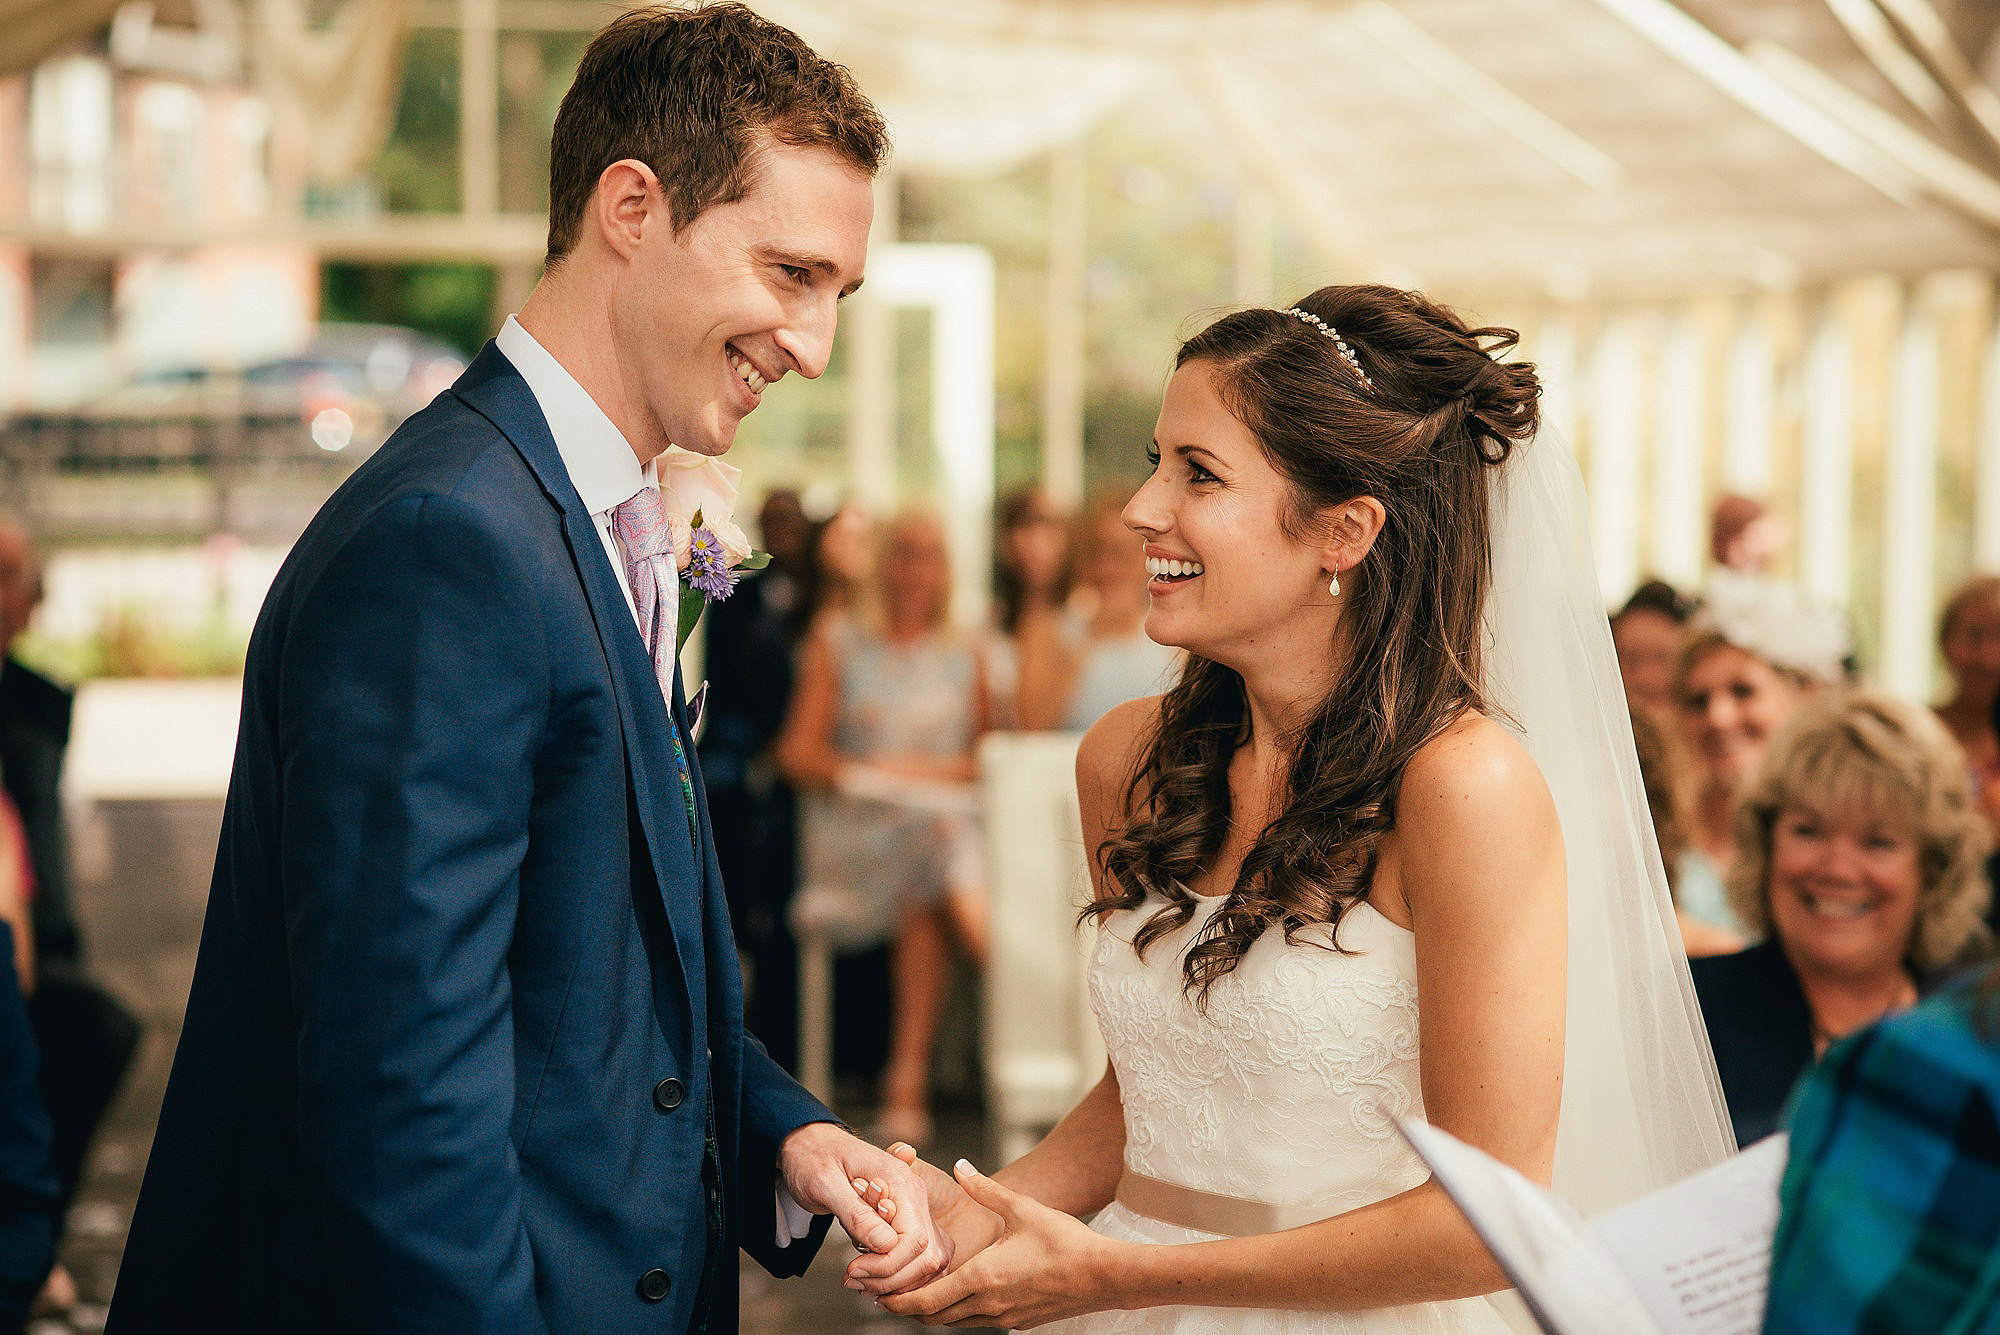 Bride and Groom Ceremony at Abbeywood Estate